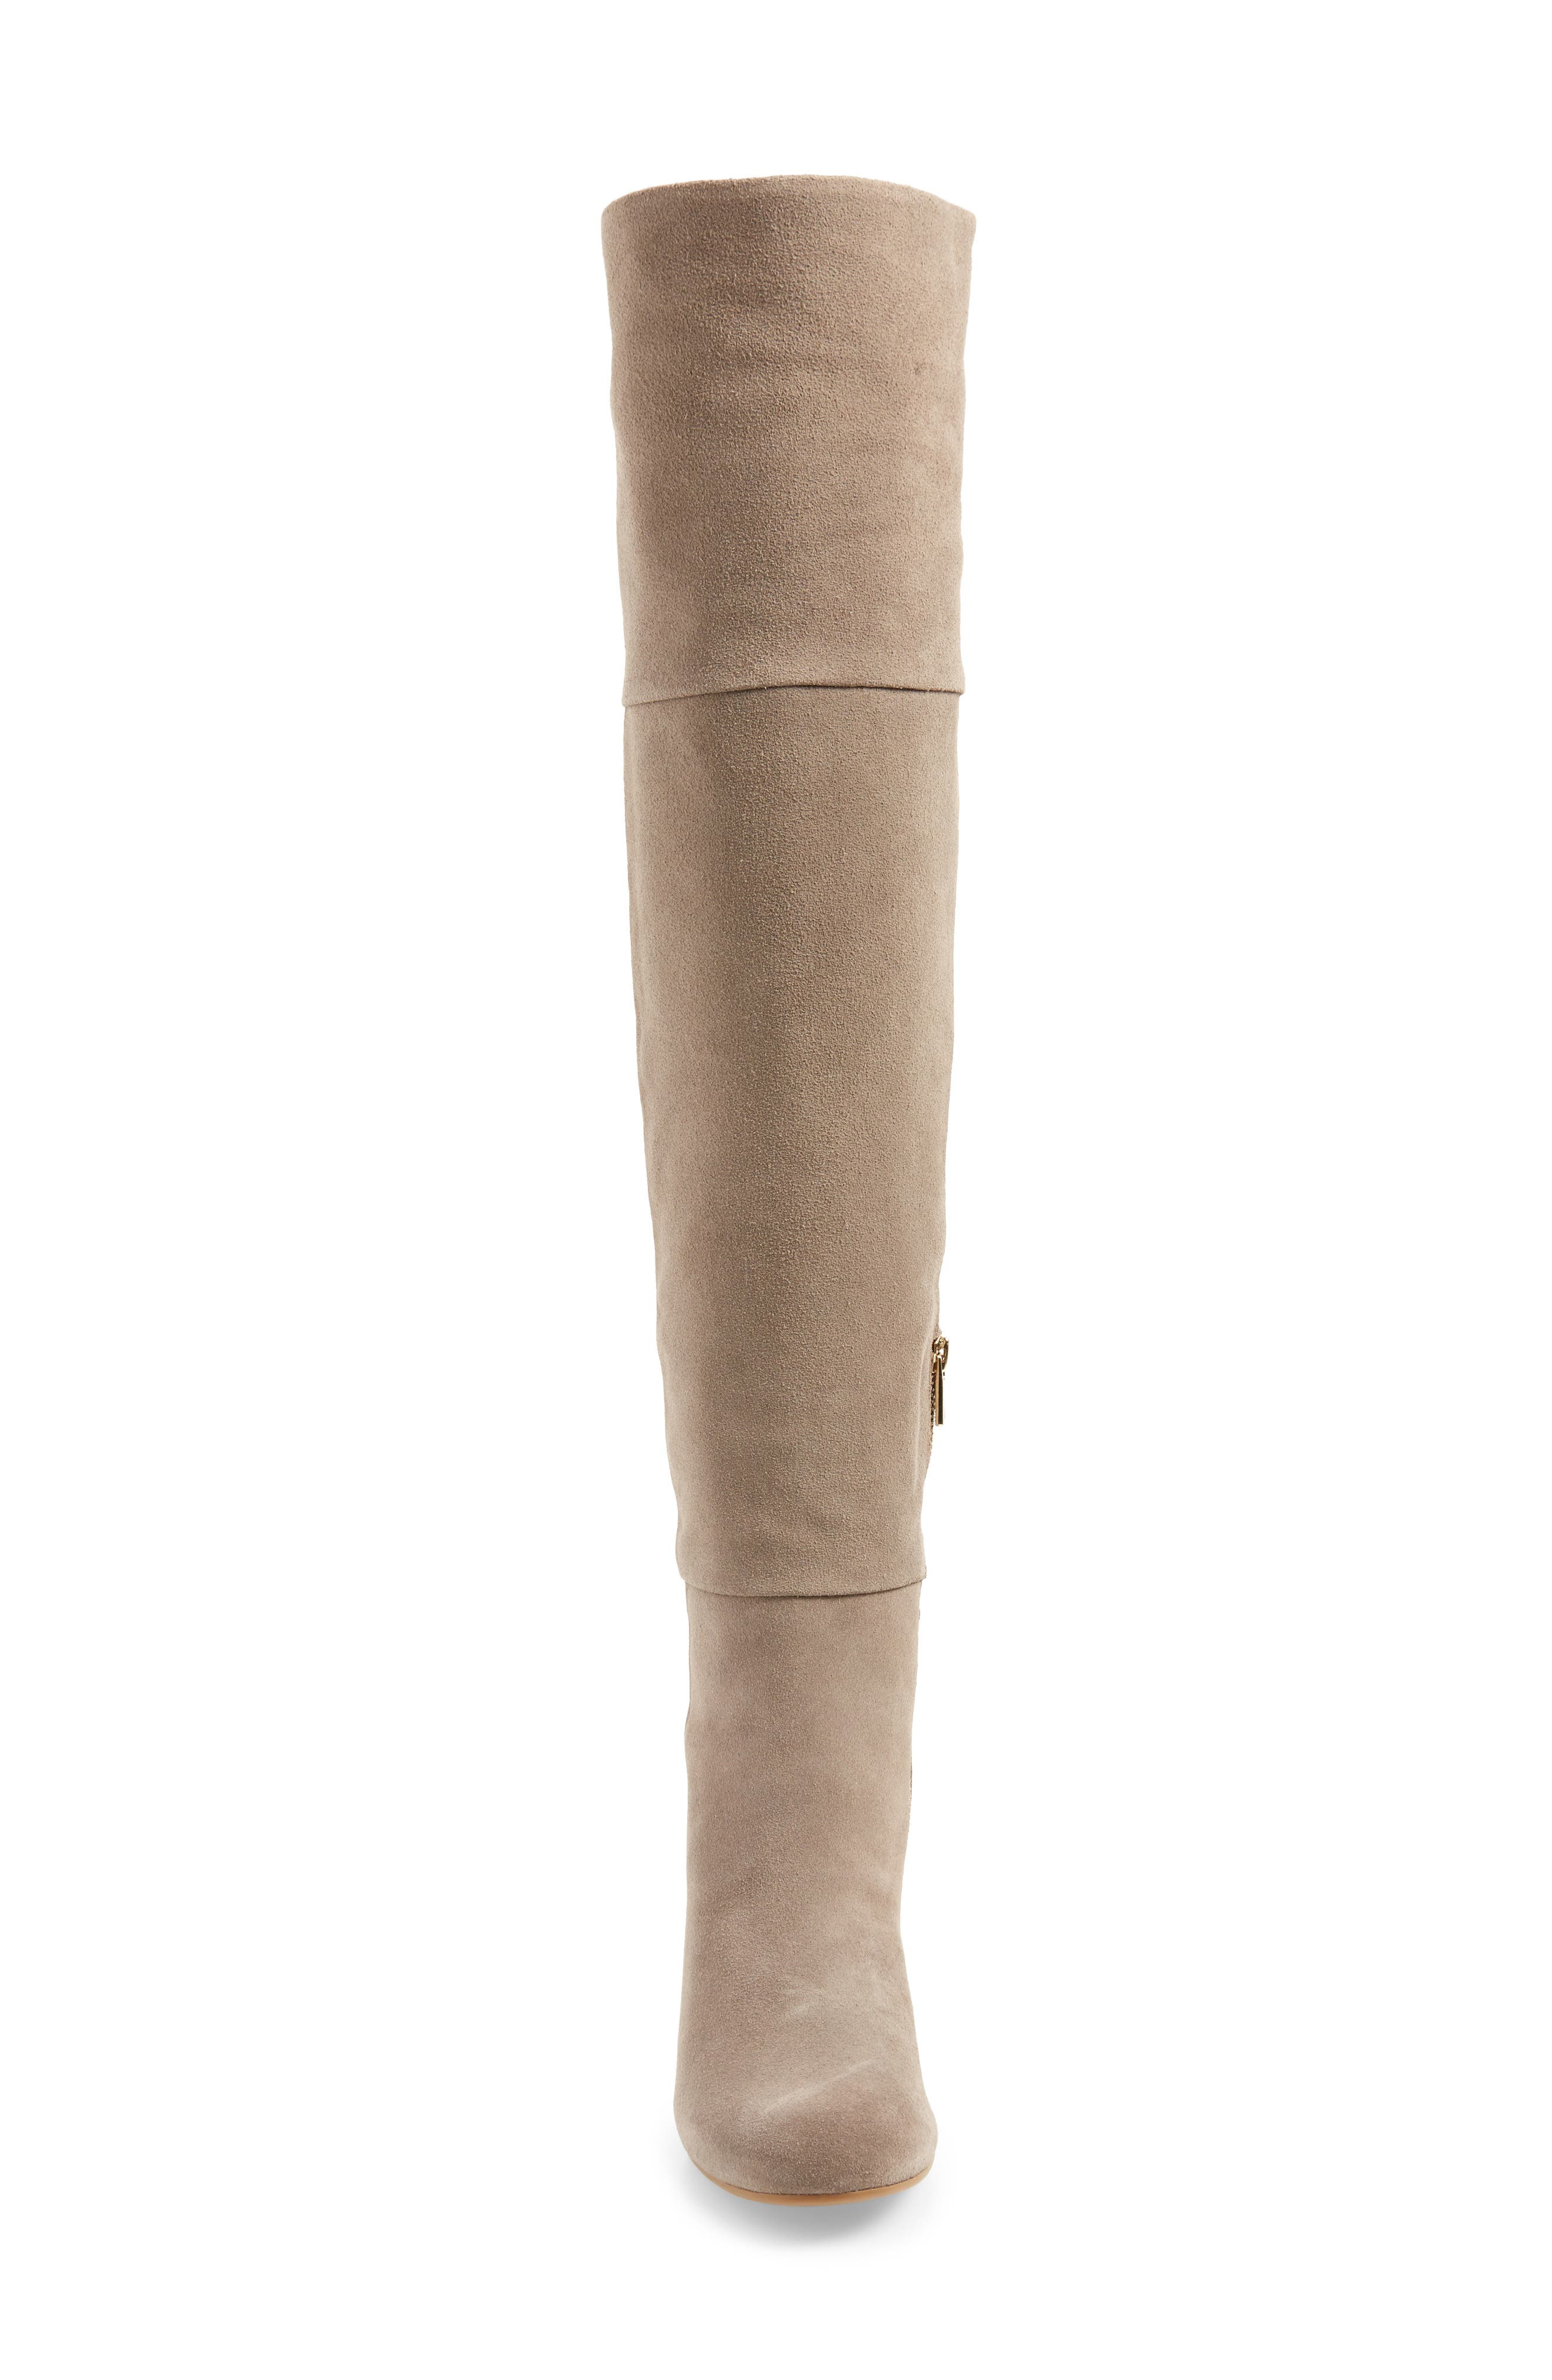 Catherine Over the Knee Boot,                             Alternate thumbnail 4, color,                             Grey Suede